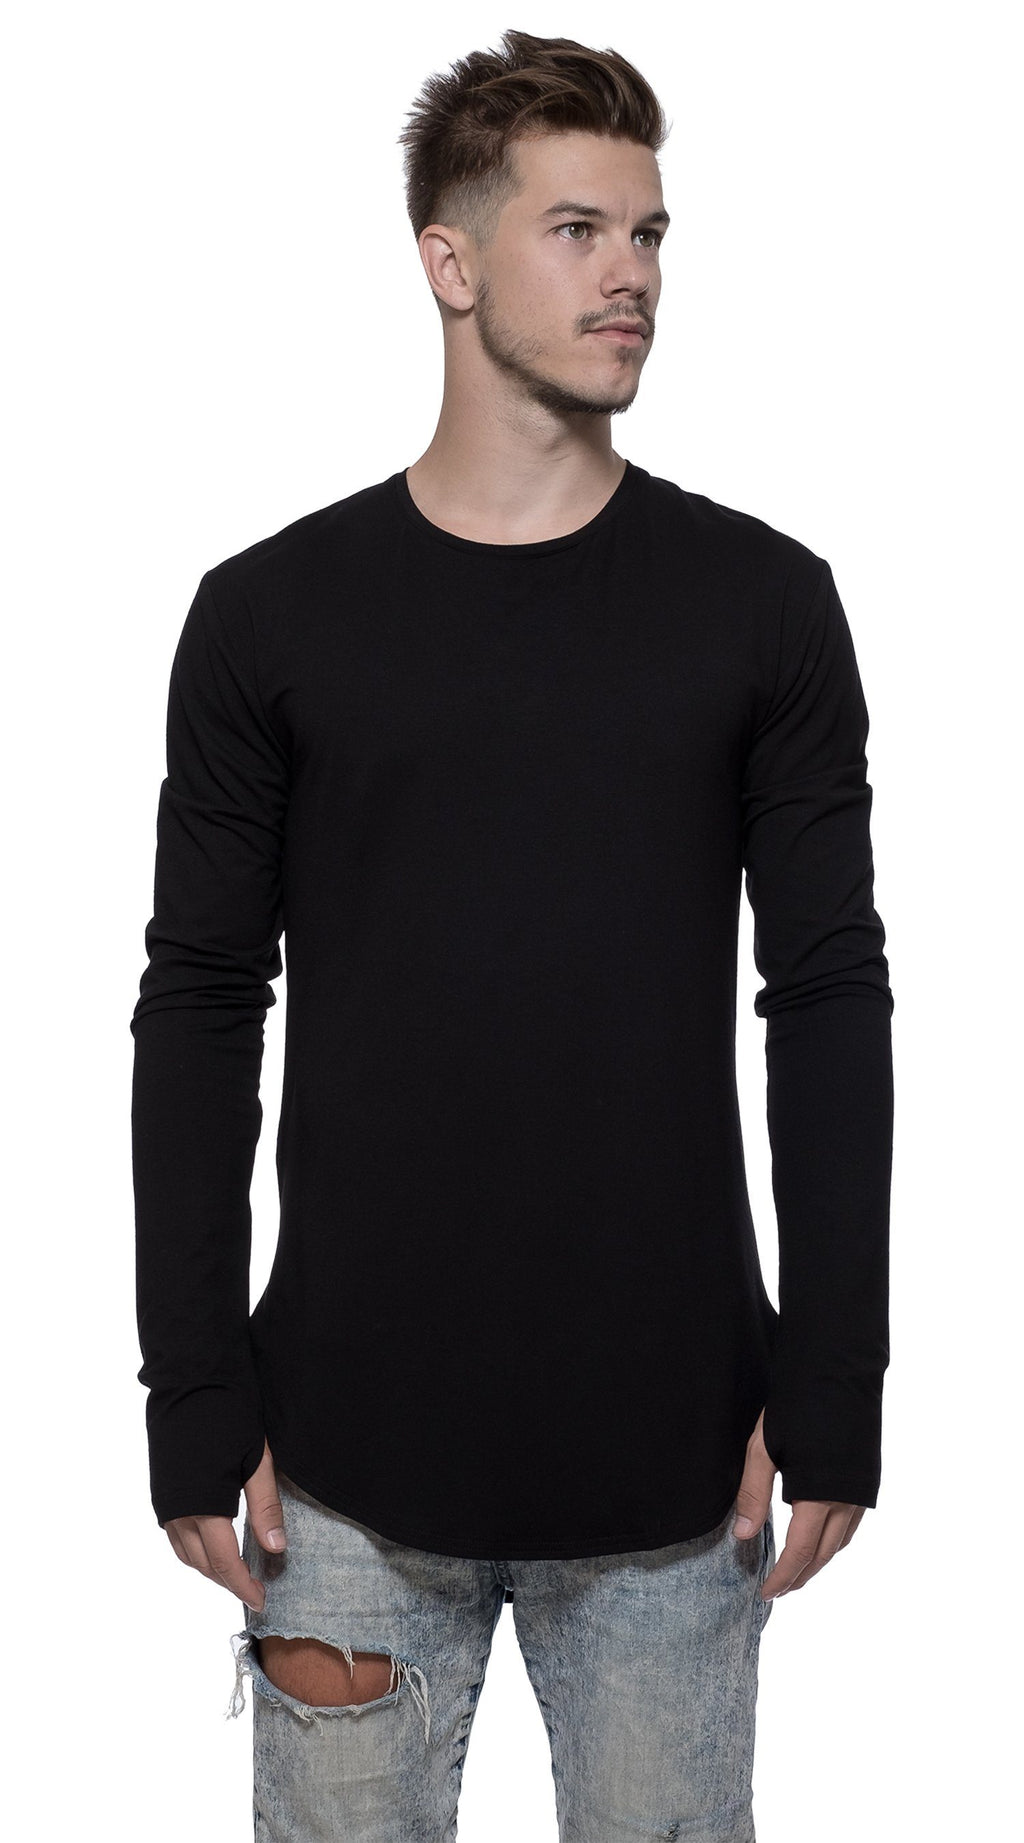 TheG Man Viscose Under Long Tee // black